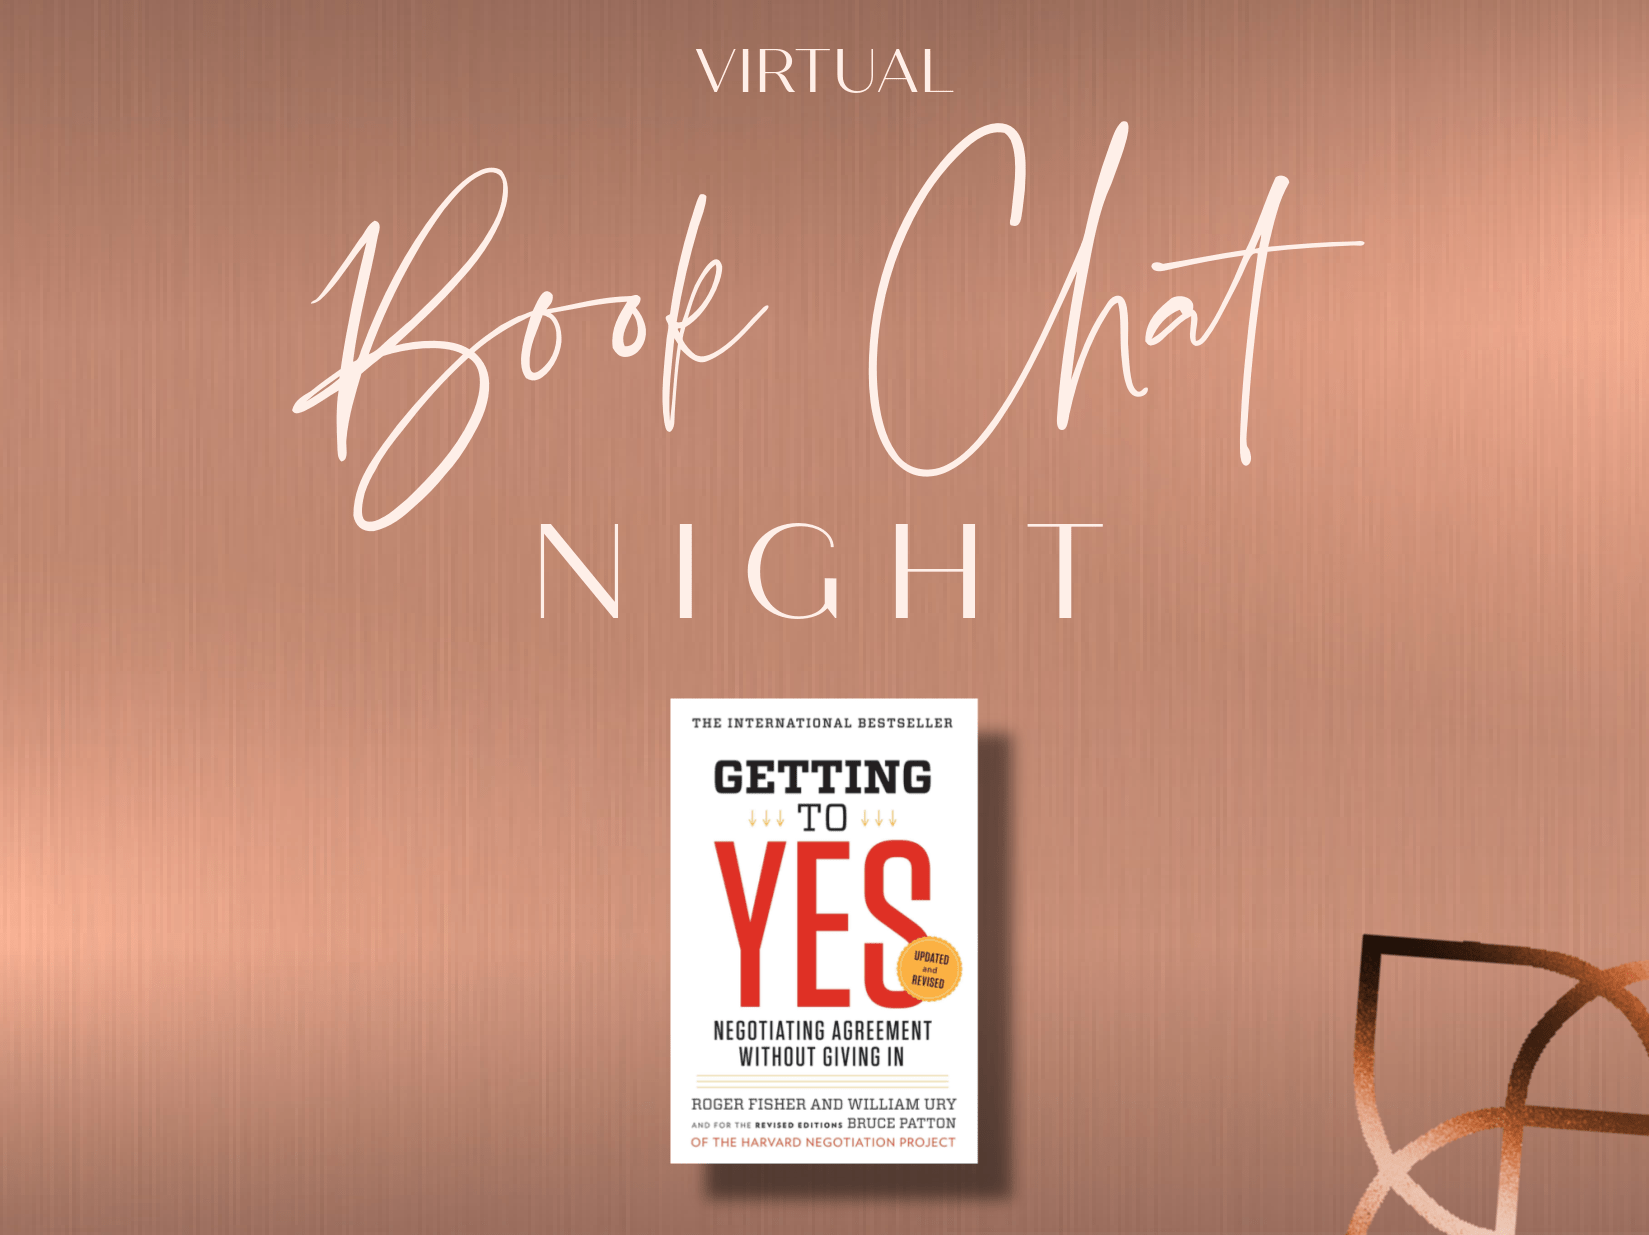 book club chat night on Getting to Yes